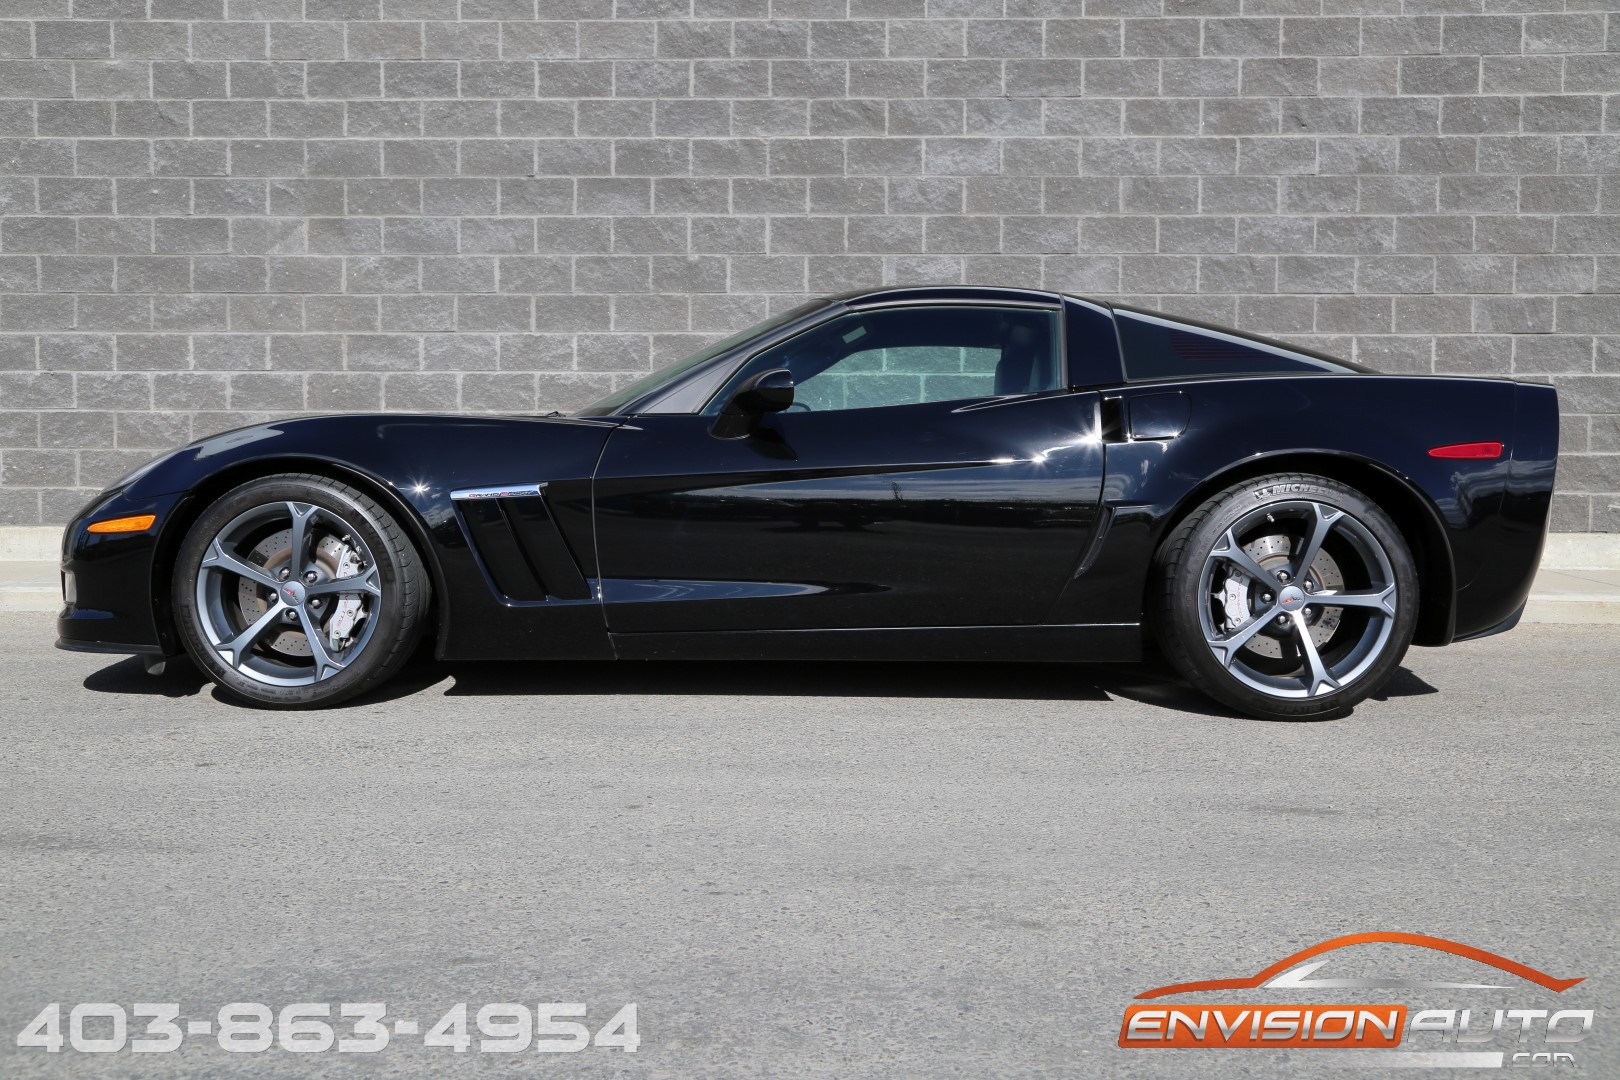 2010 chevrolet corvette grand sport coupe 1sb 6 speed manual envision auto. Black Bedroom Furniture Sets. Home Design Ideas